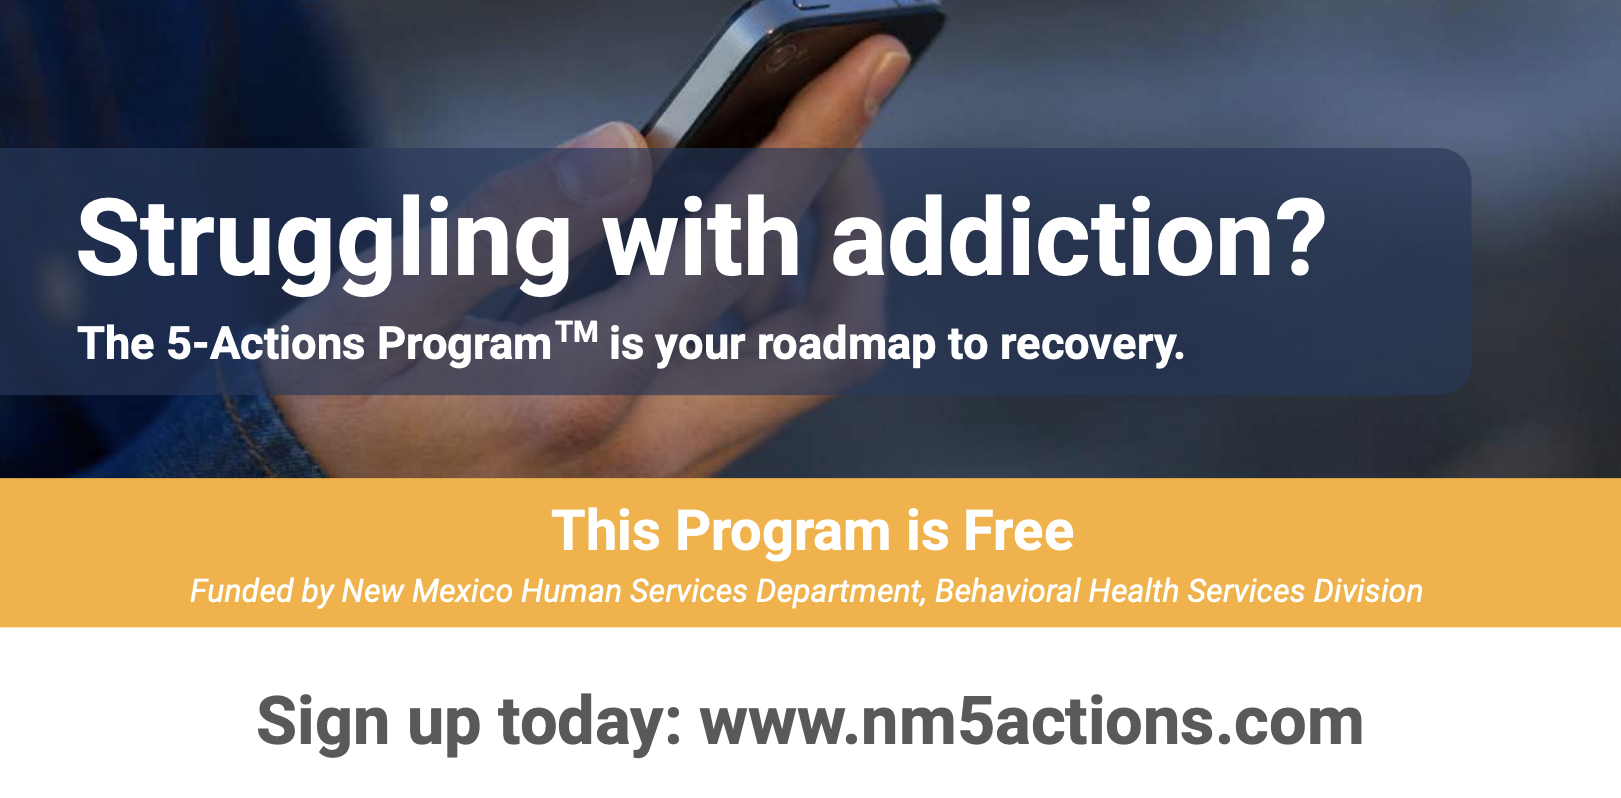 Struggling with addiction? The 5-Actions Program is your roadmap to recovery. The program is free. Funded by New Mexico Human Services Department, Behavioral Health Services Division. Sign up today: www.nm5actions.com